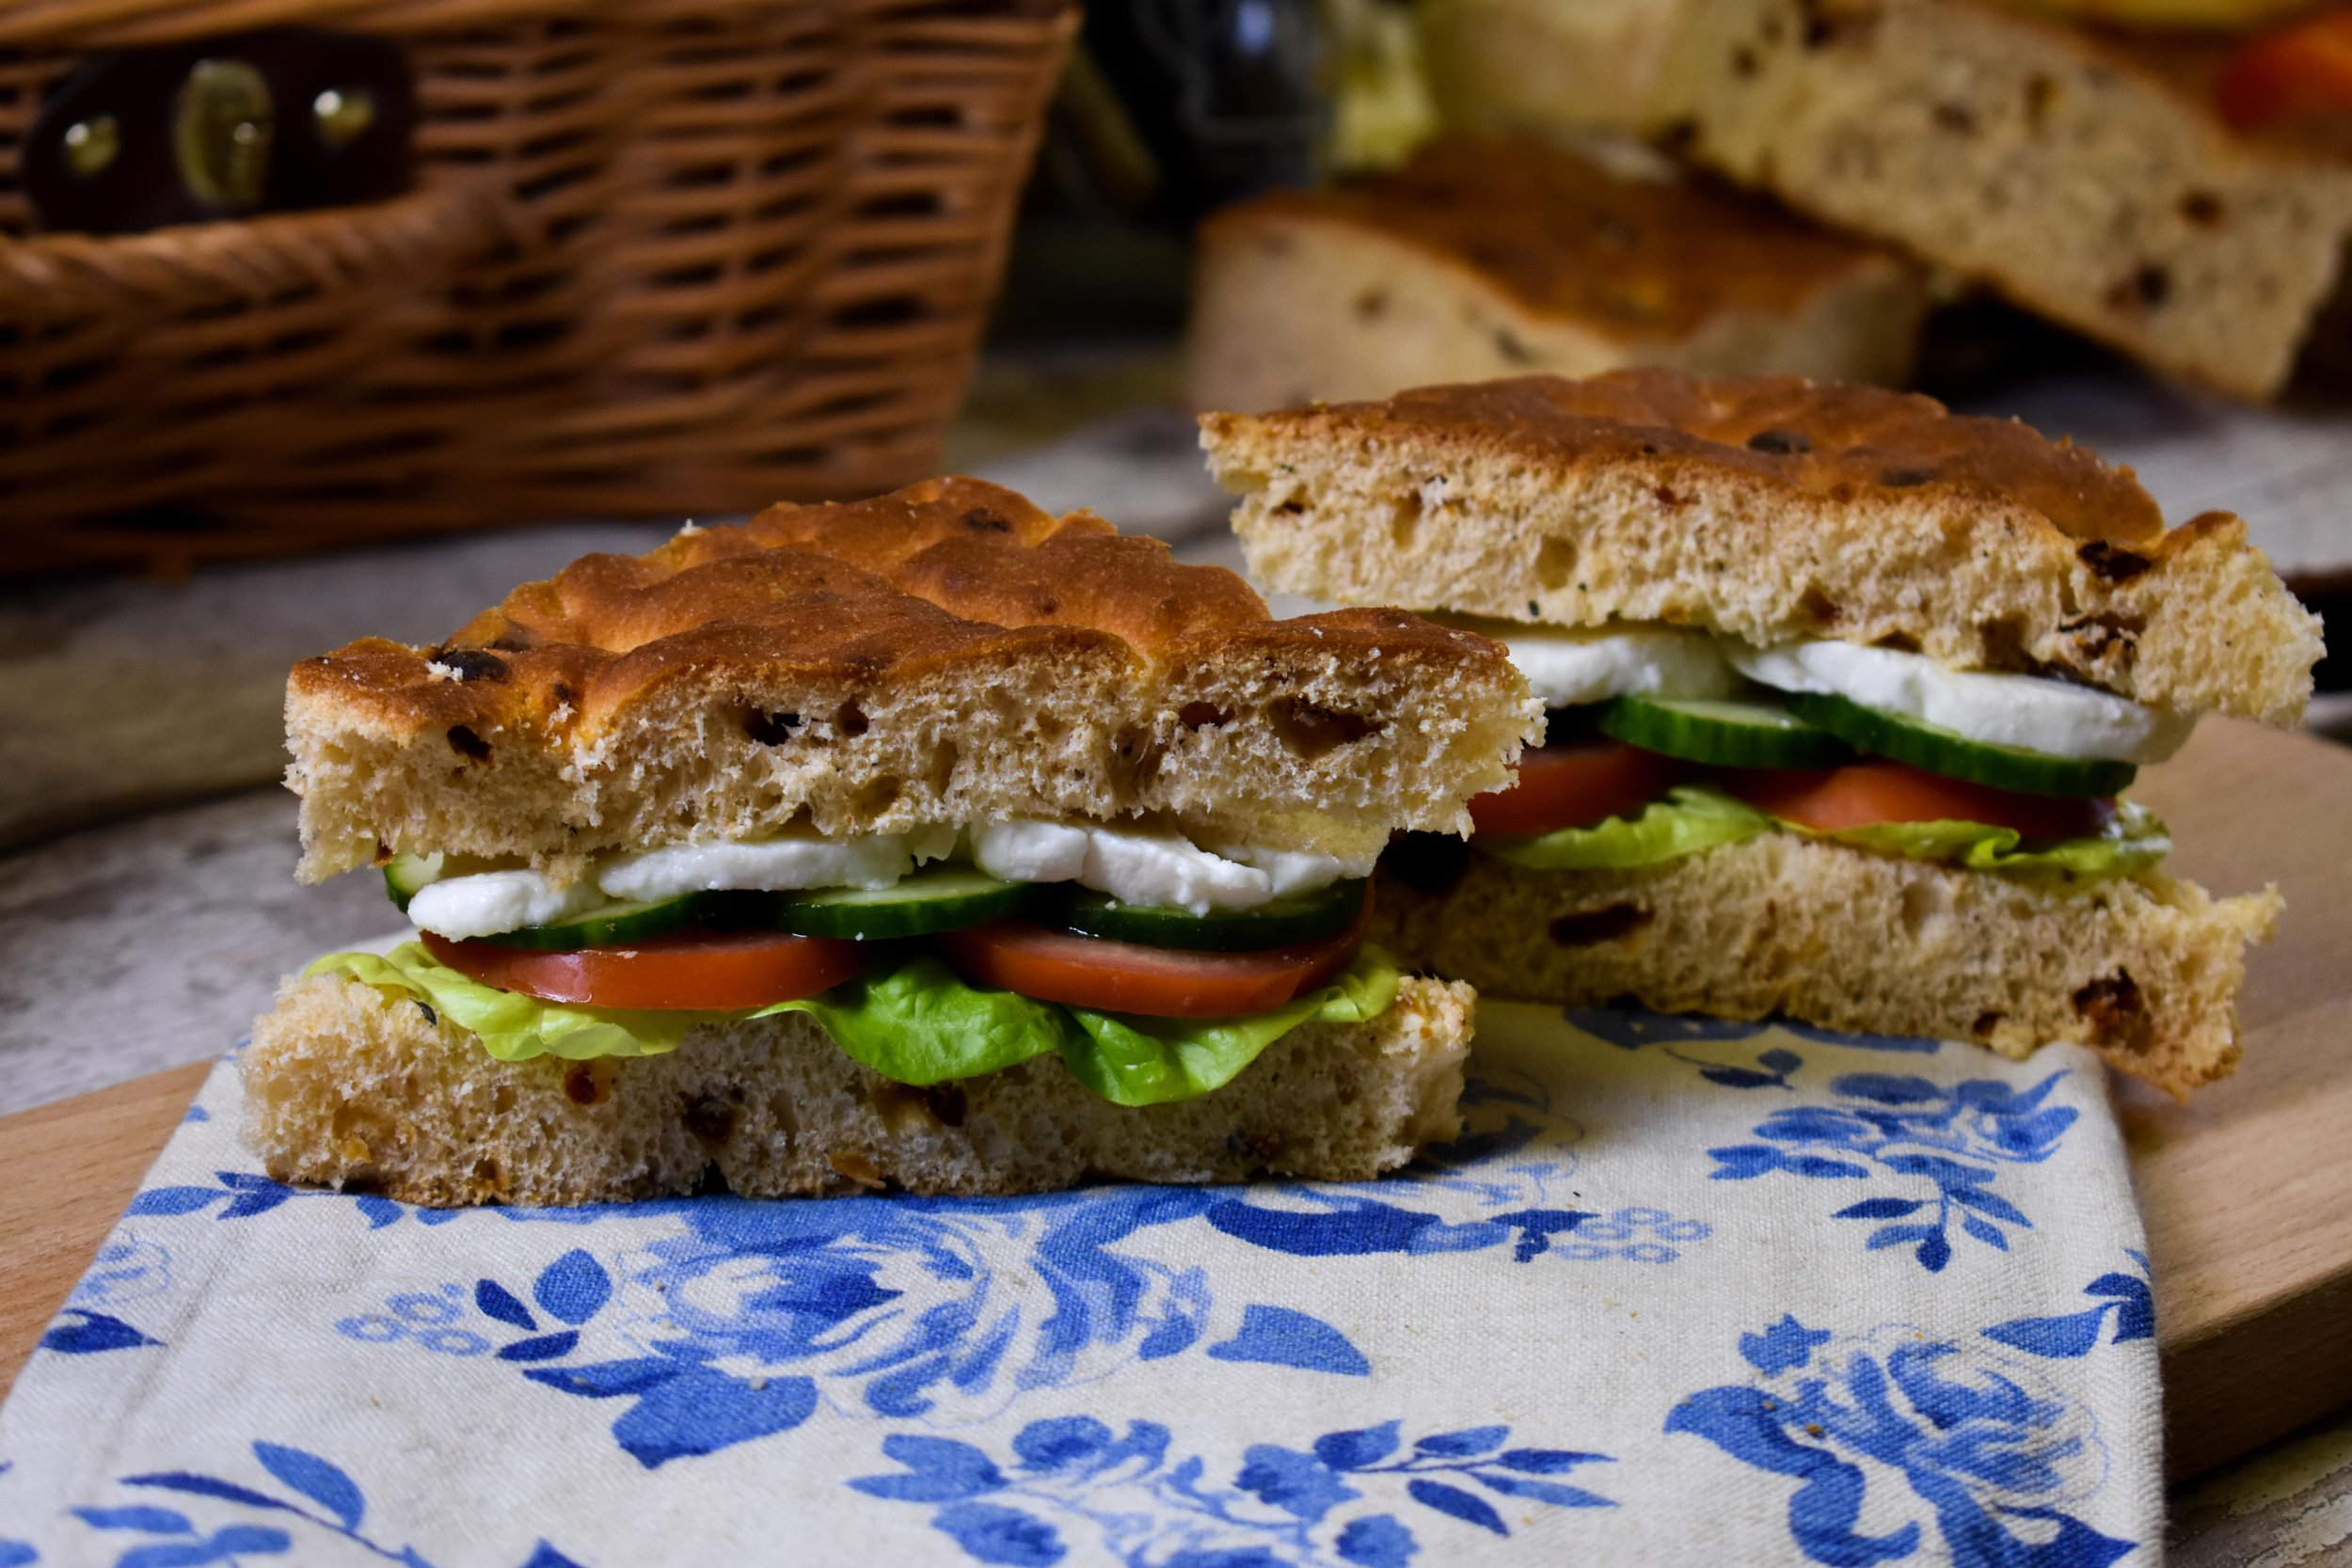 Sun-dried Tomato Focaccia filled with lettuce, cucumber, tomato and mozzarella